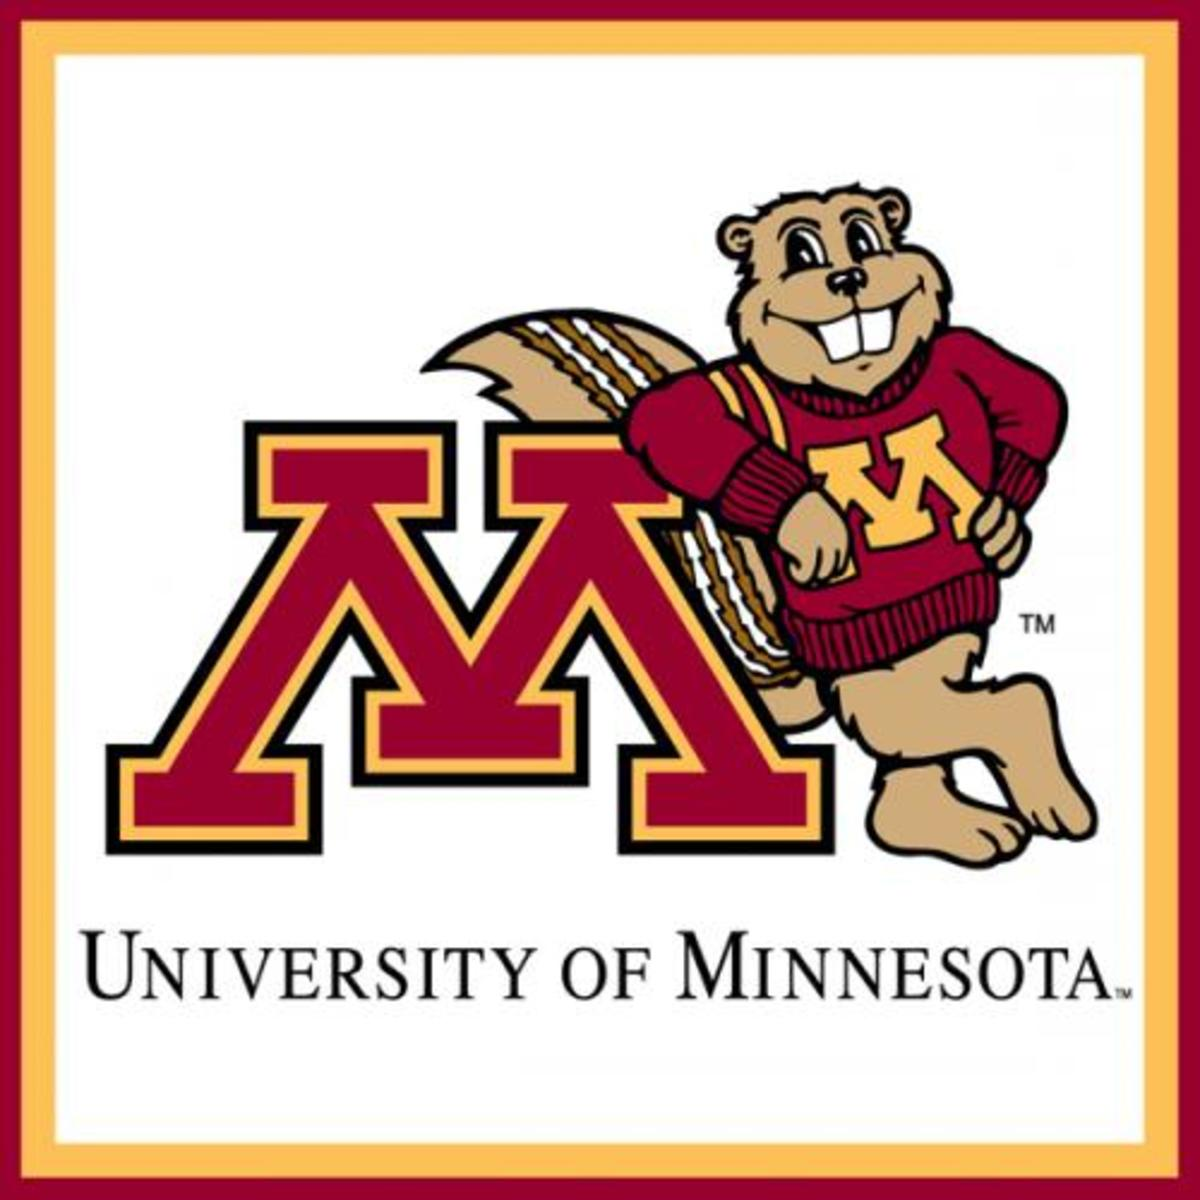 New Coach, but will the win/loss records still reflect losing for the Gophers?